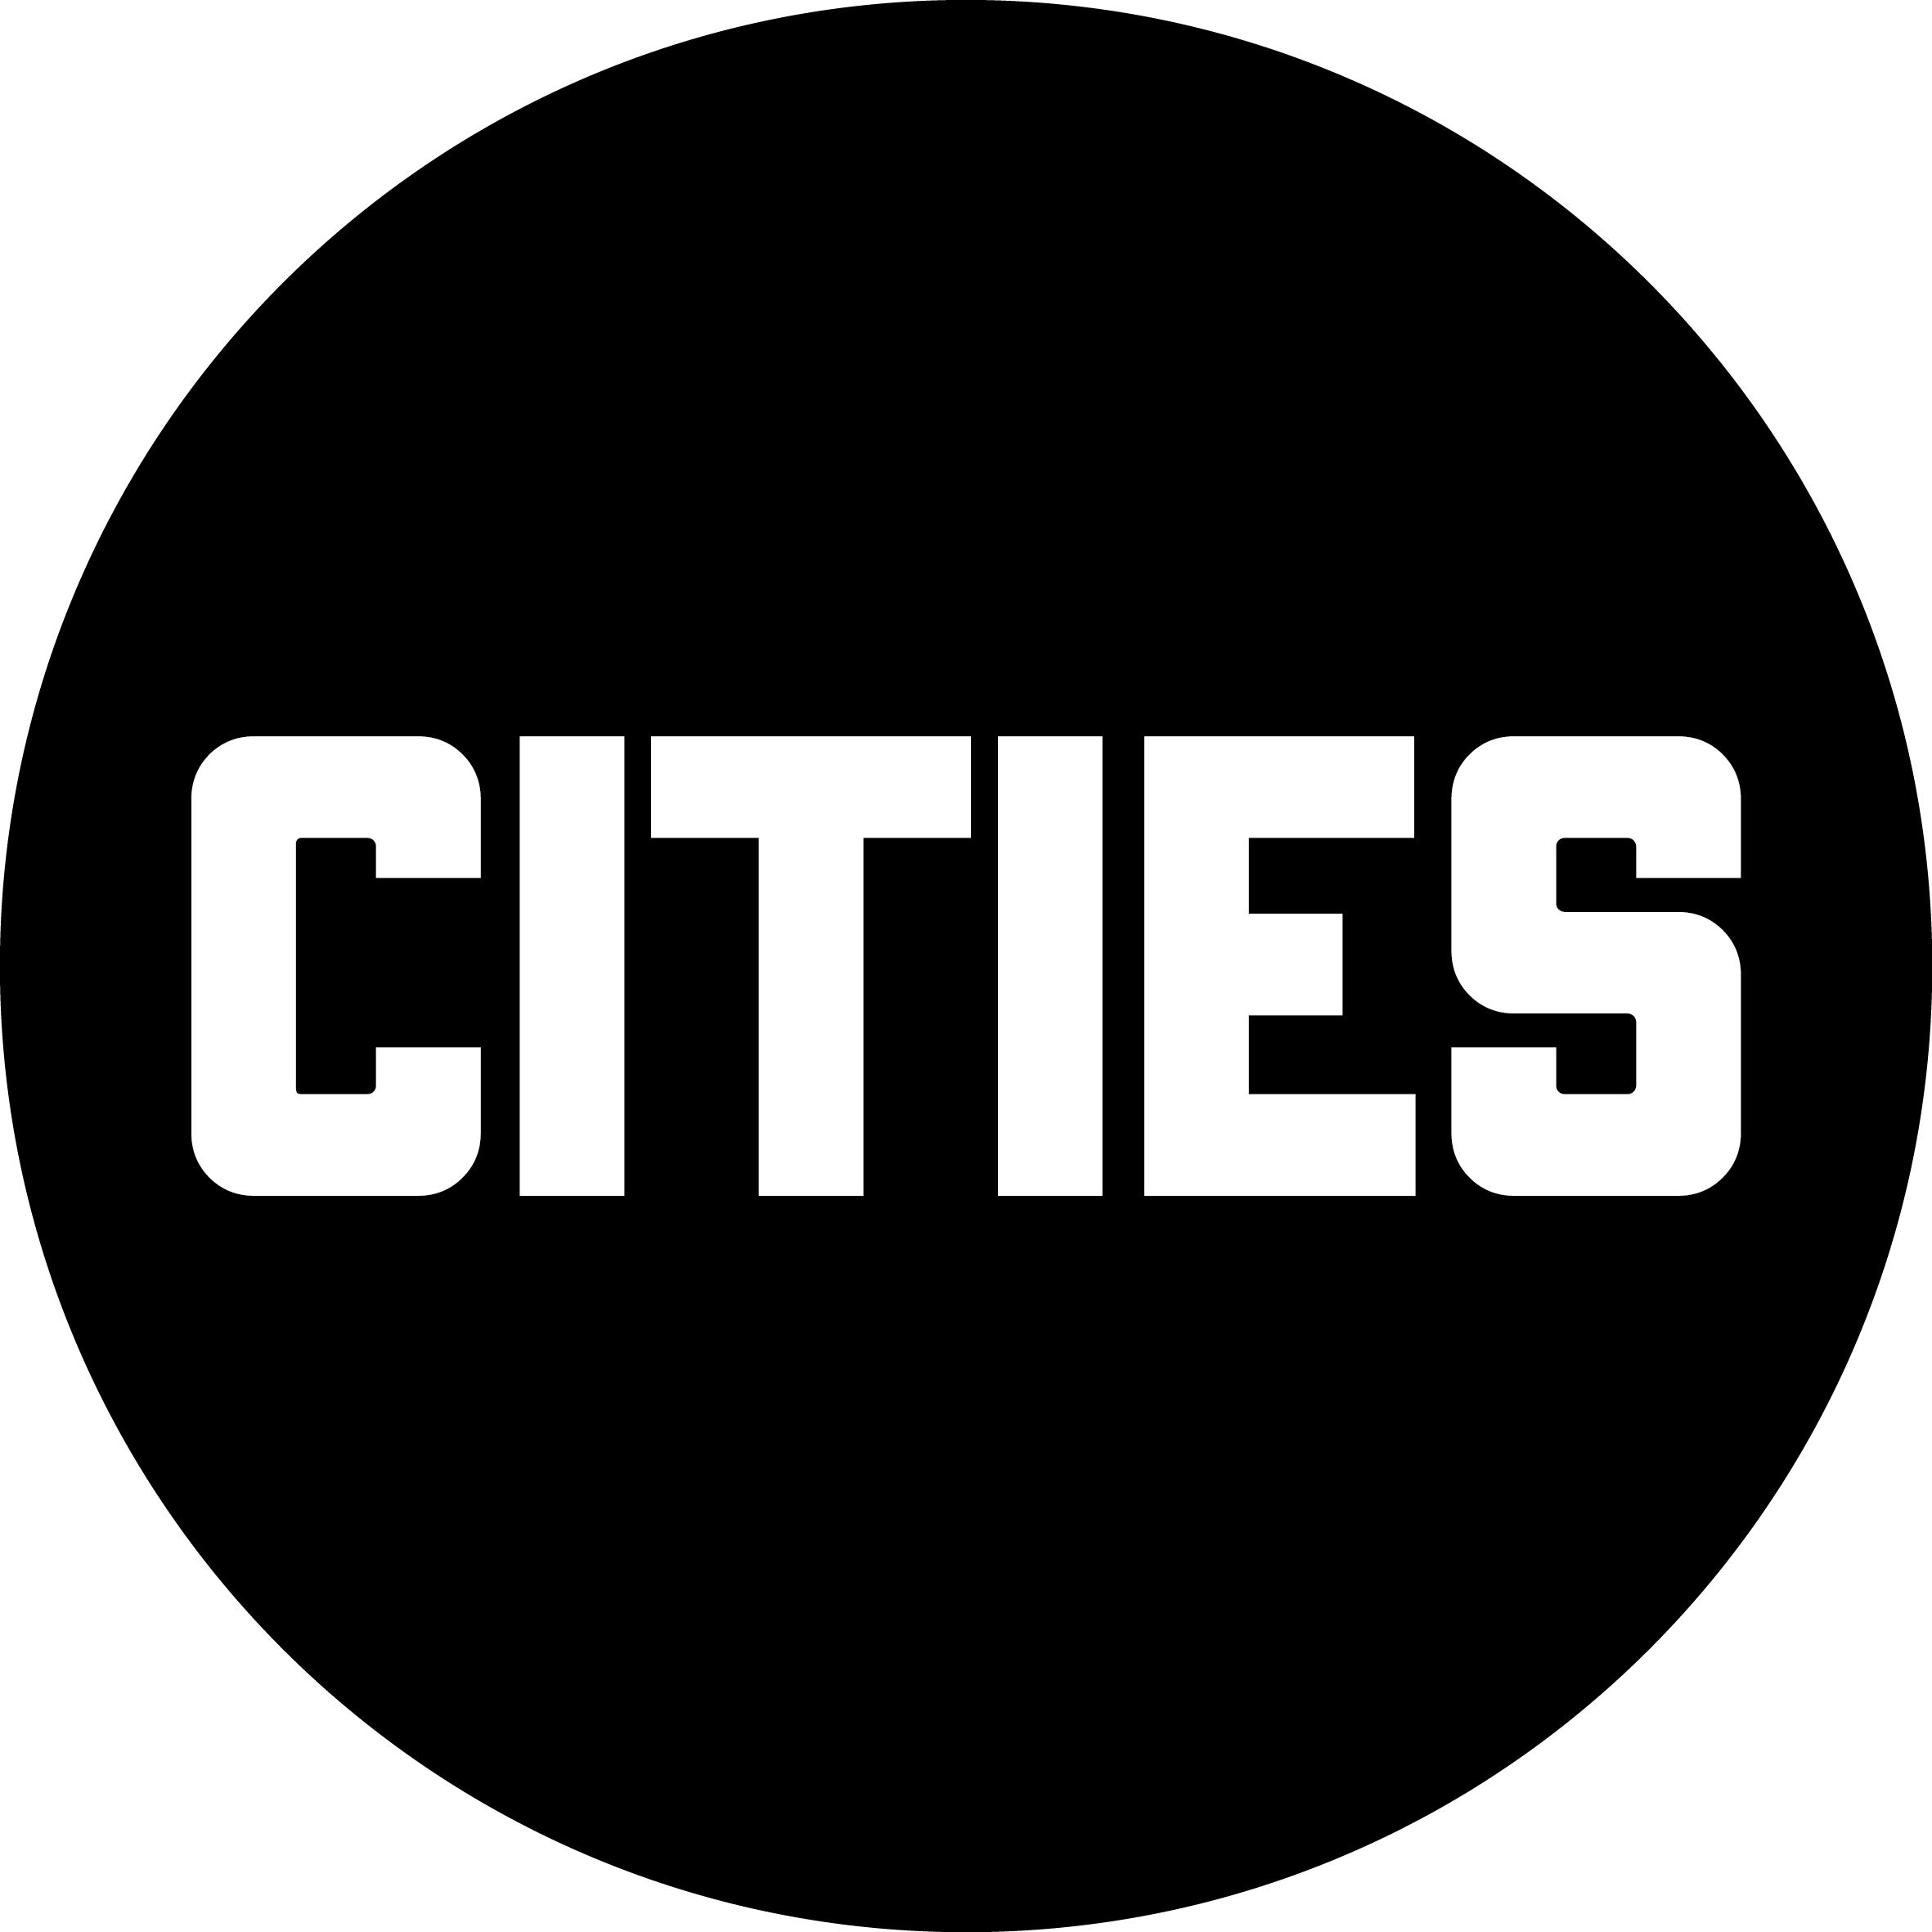 cities_logo